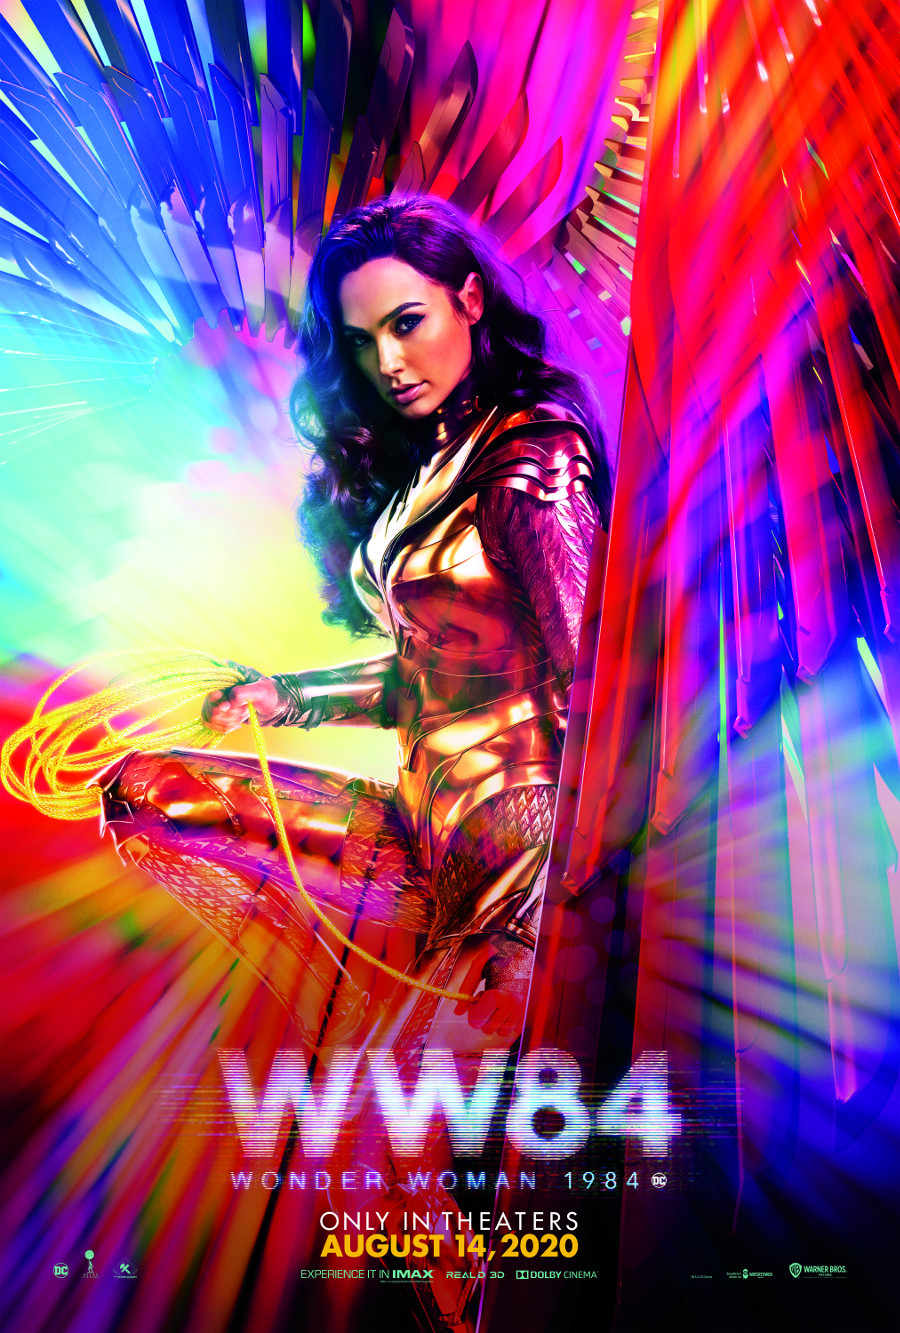 Wonder Woman 1984 Gal Gadot poster new release date